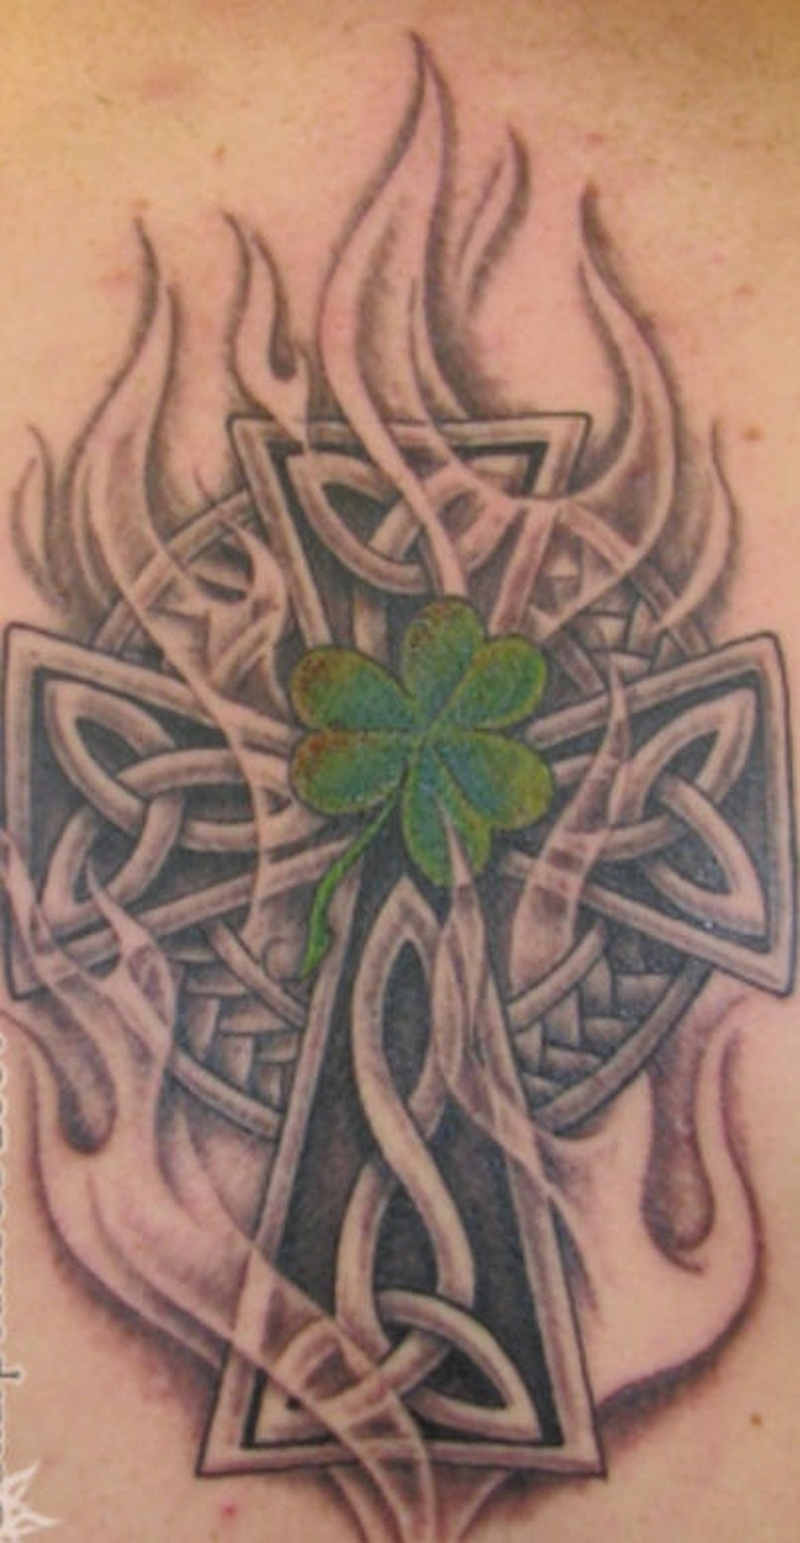 Tattoo celticcrossshamrockknottattoo